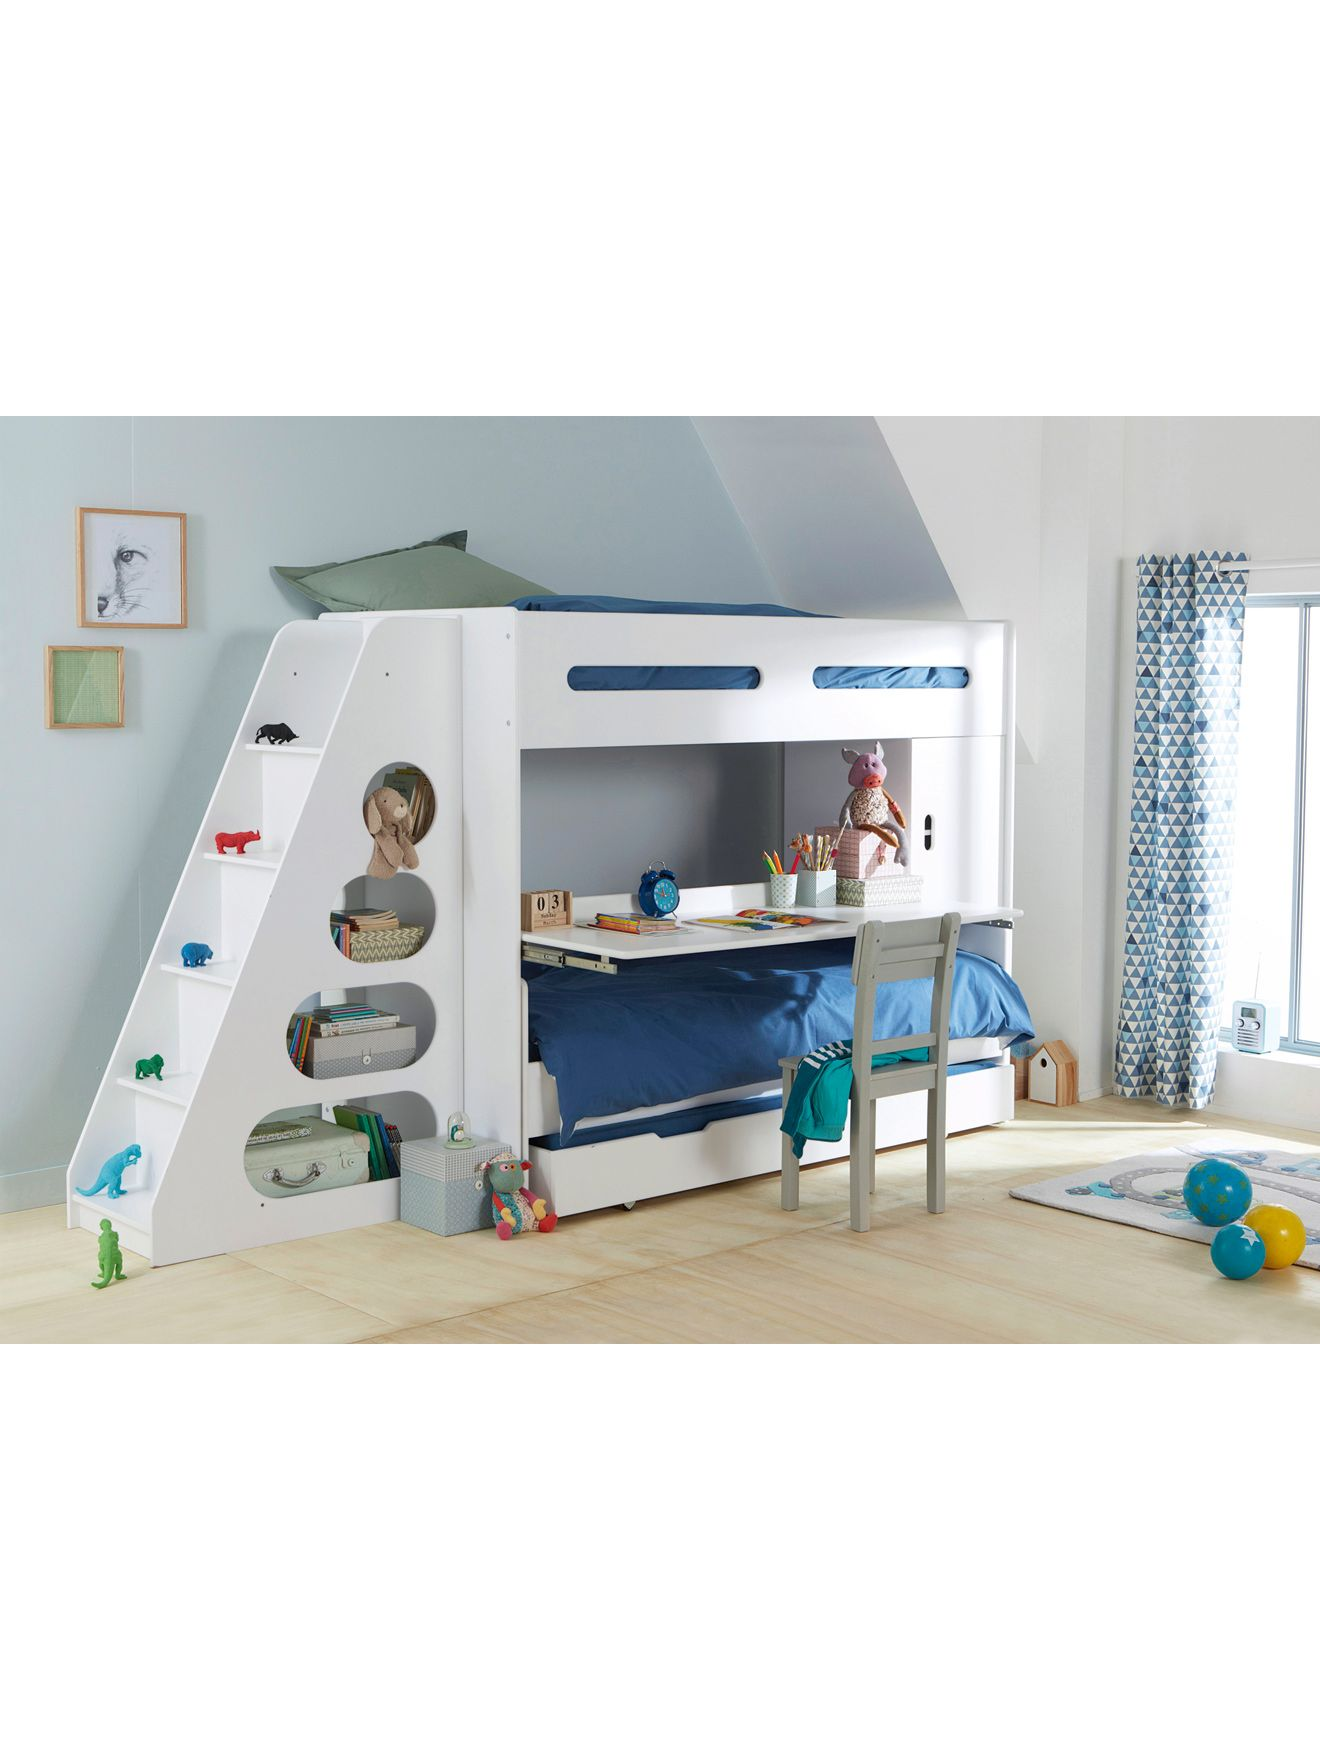 lit mezzanine enfant pour combin volutif combibed chambre enfant deco en 2019 pinterest. Black Bedroom Furniture Sets. Home Design Ideas